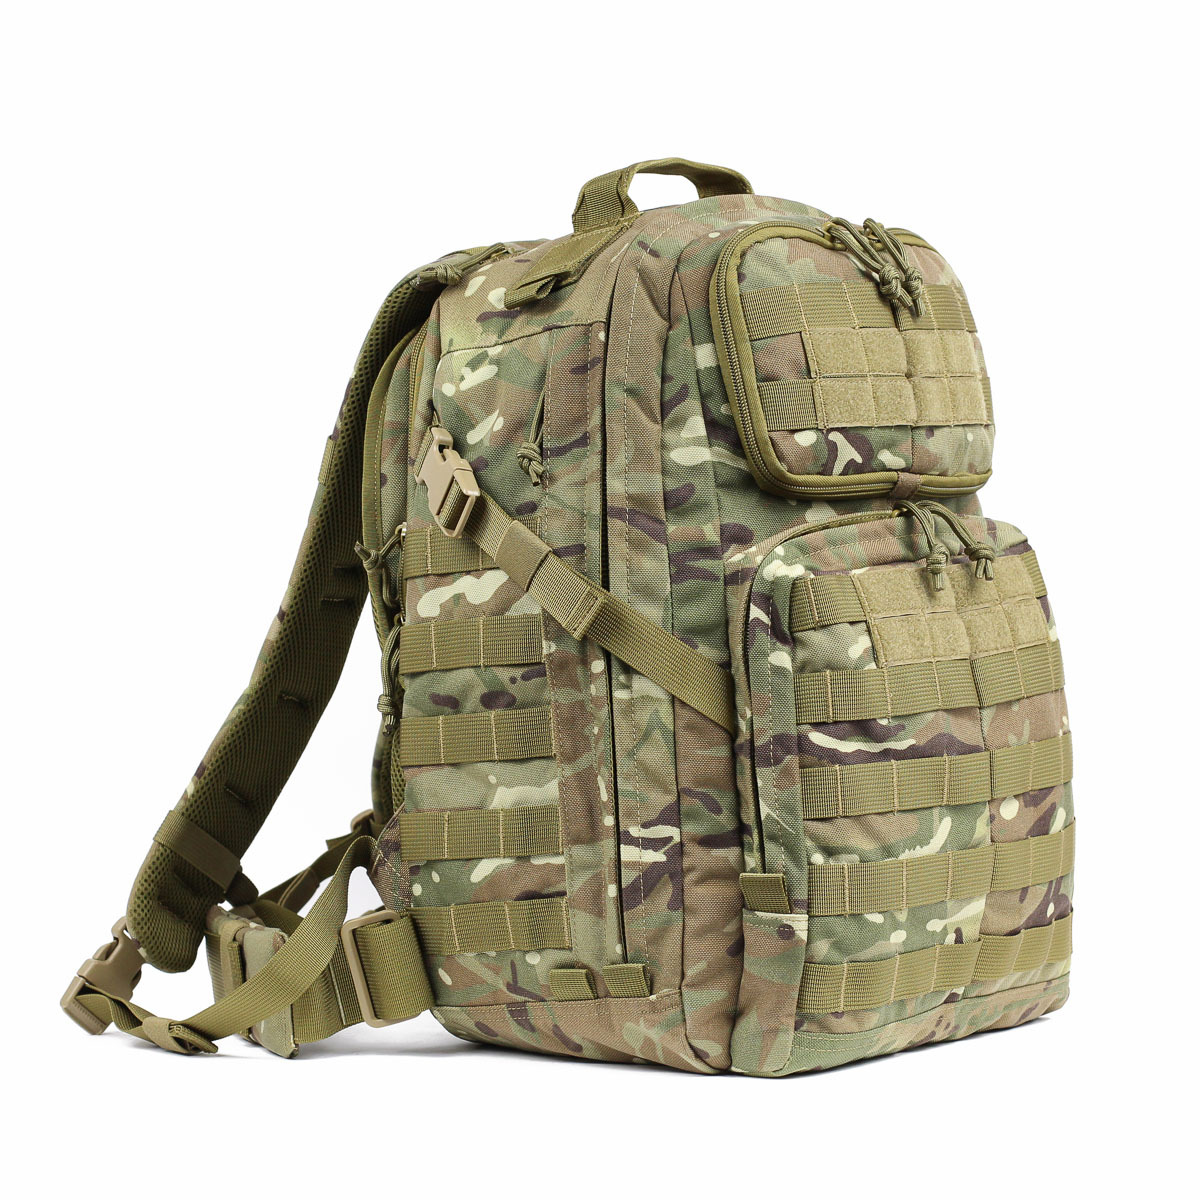 YoMont 900D 55L Military Tactical 24 Hours Waterproof Backpack Molle Outdoor Hiking Travel Sports Survival Backpack Bug Out Bag men military backpack camouflage backpack molle system saver bug bag survival backpack military travel bags